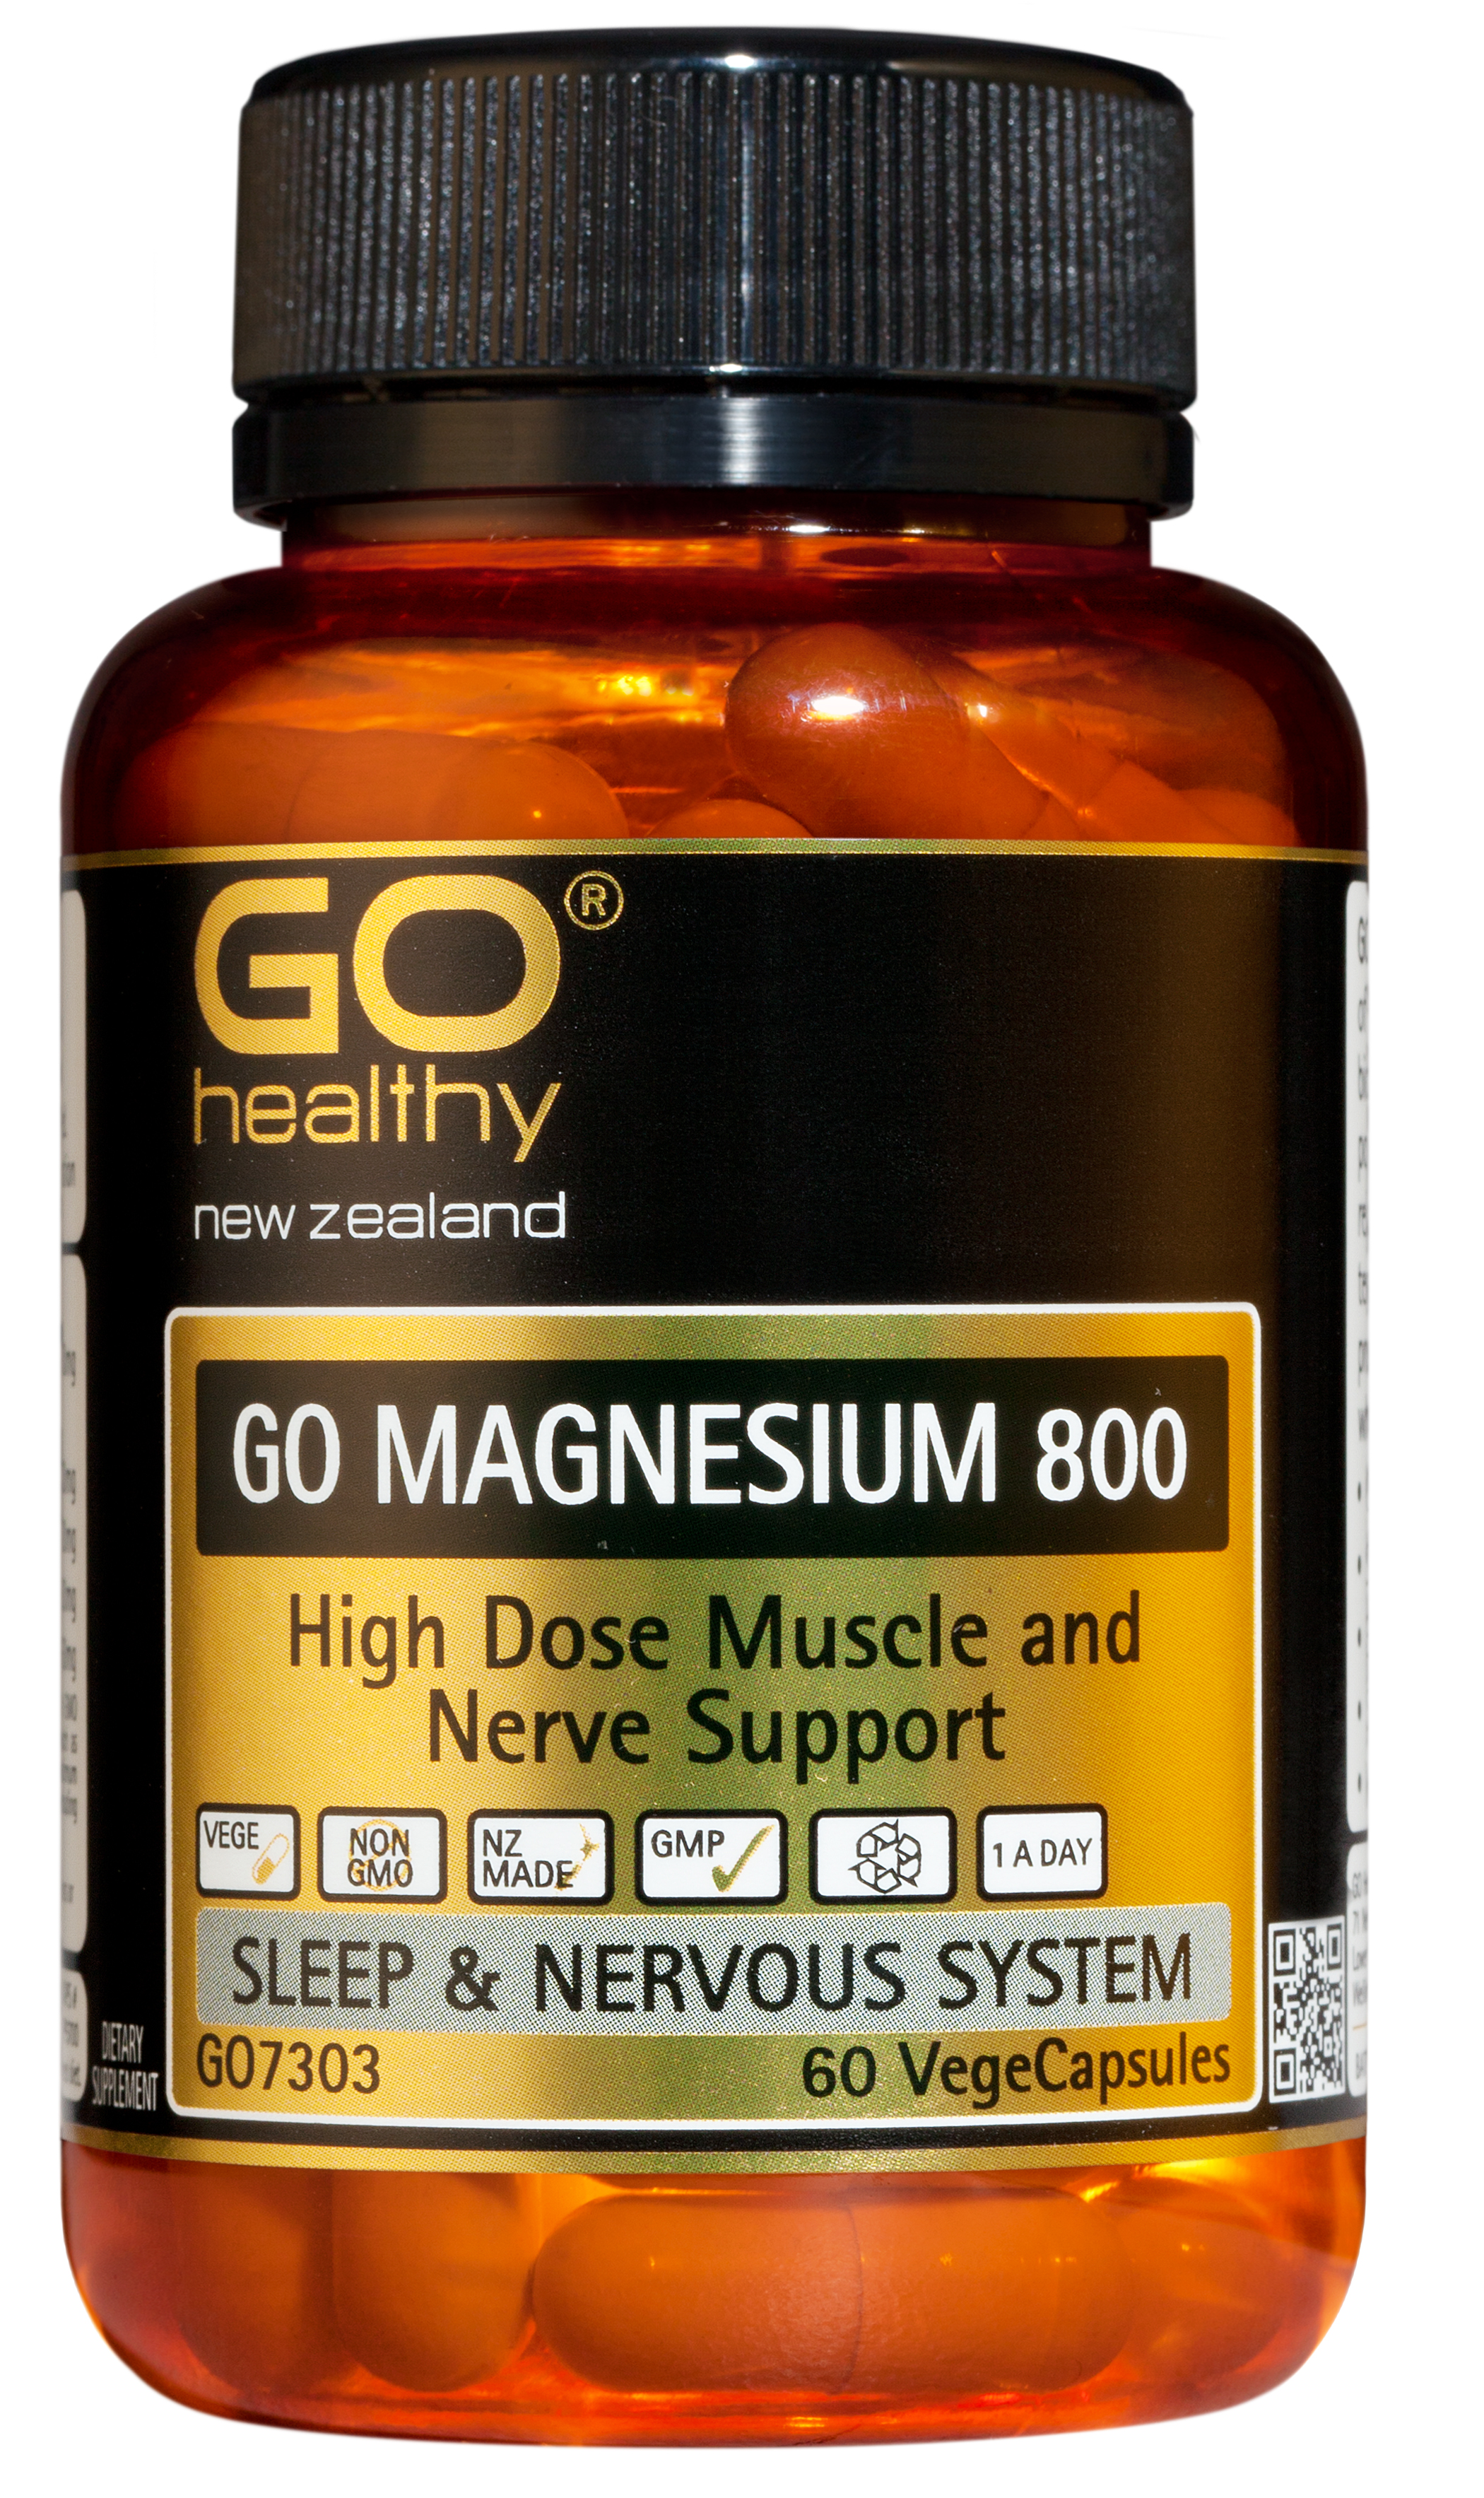 Go Healthy Magnesium 800 60 VegeCaps